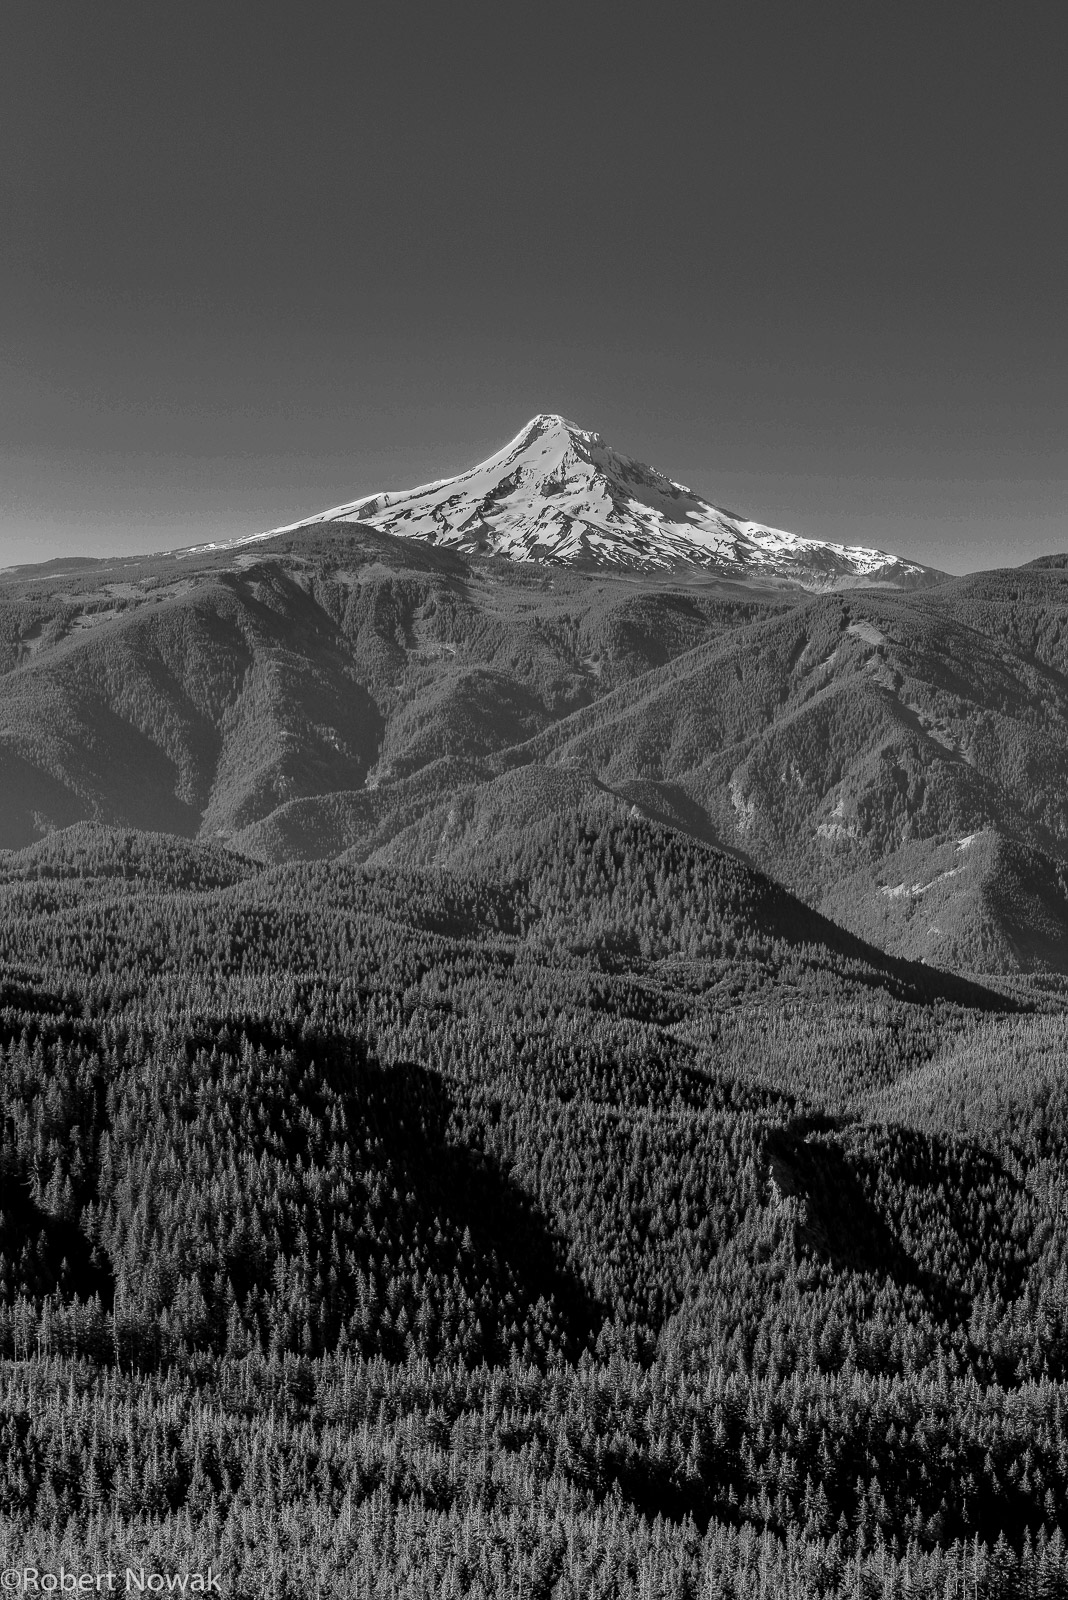 Mt. Hood, Gifford Pinchot National Forest, Washington, Grassy Knoll, summit, photo